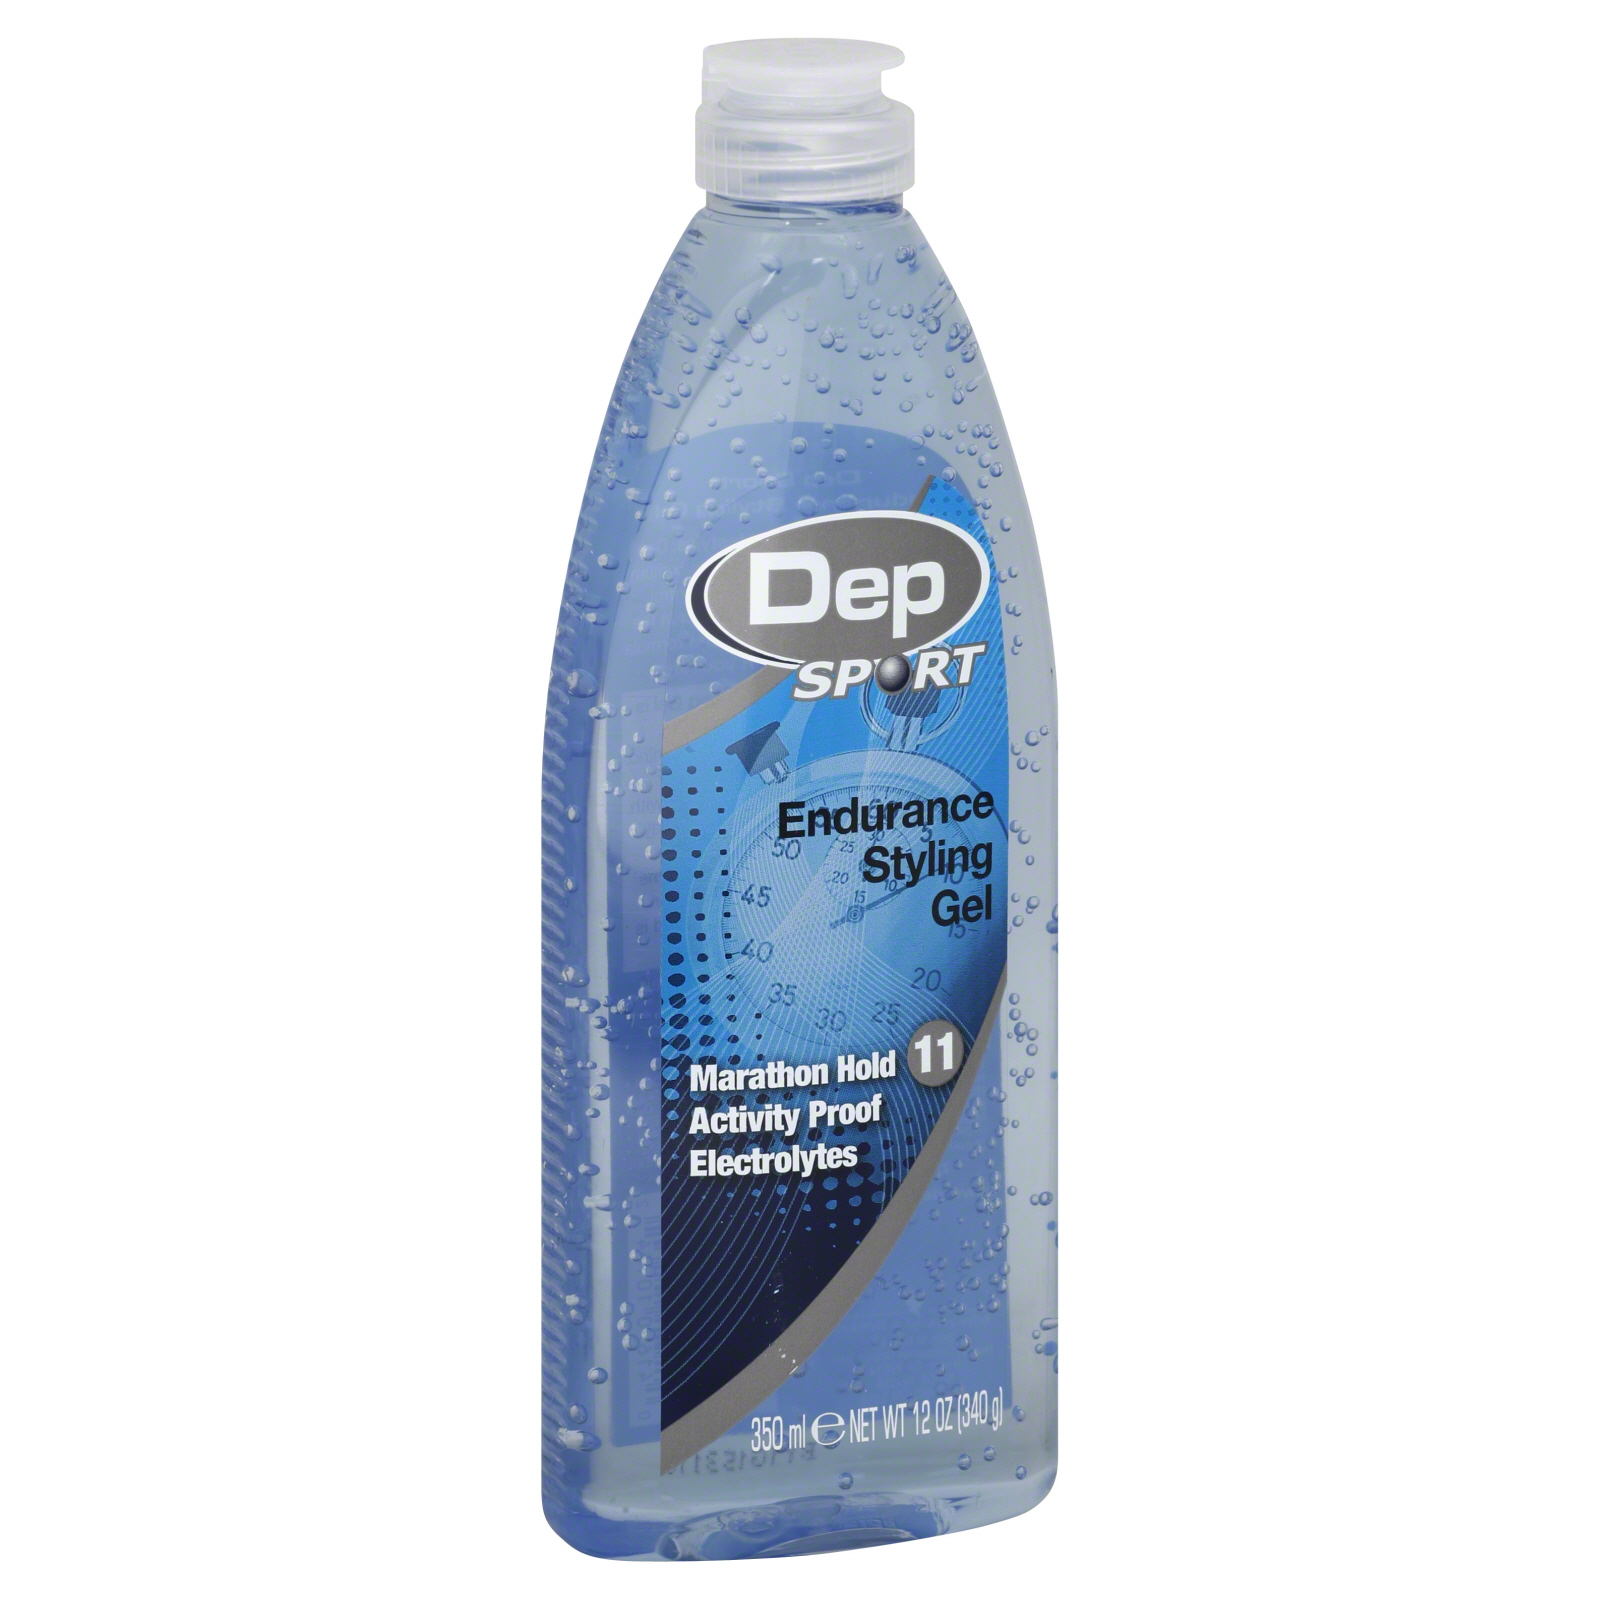 Dep Sport Styling Gel Endurance 12 Oz 340 G